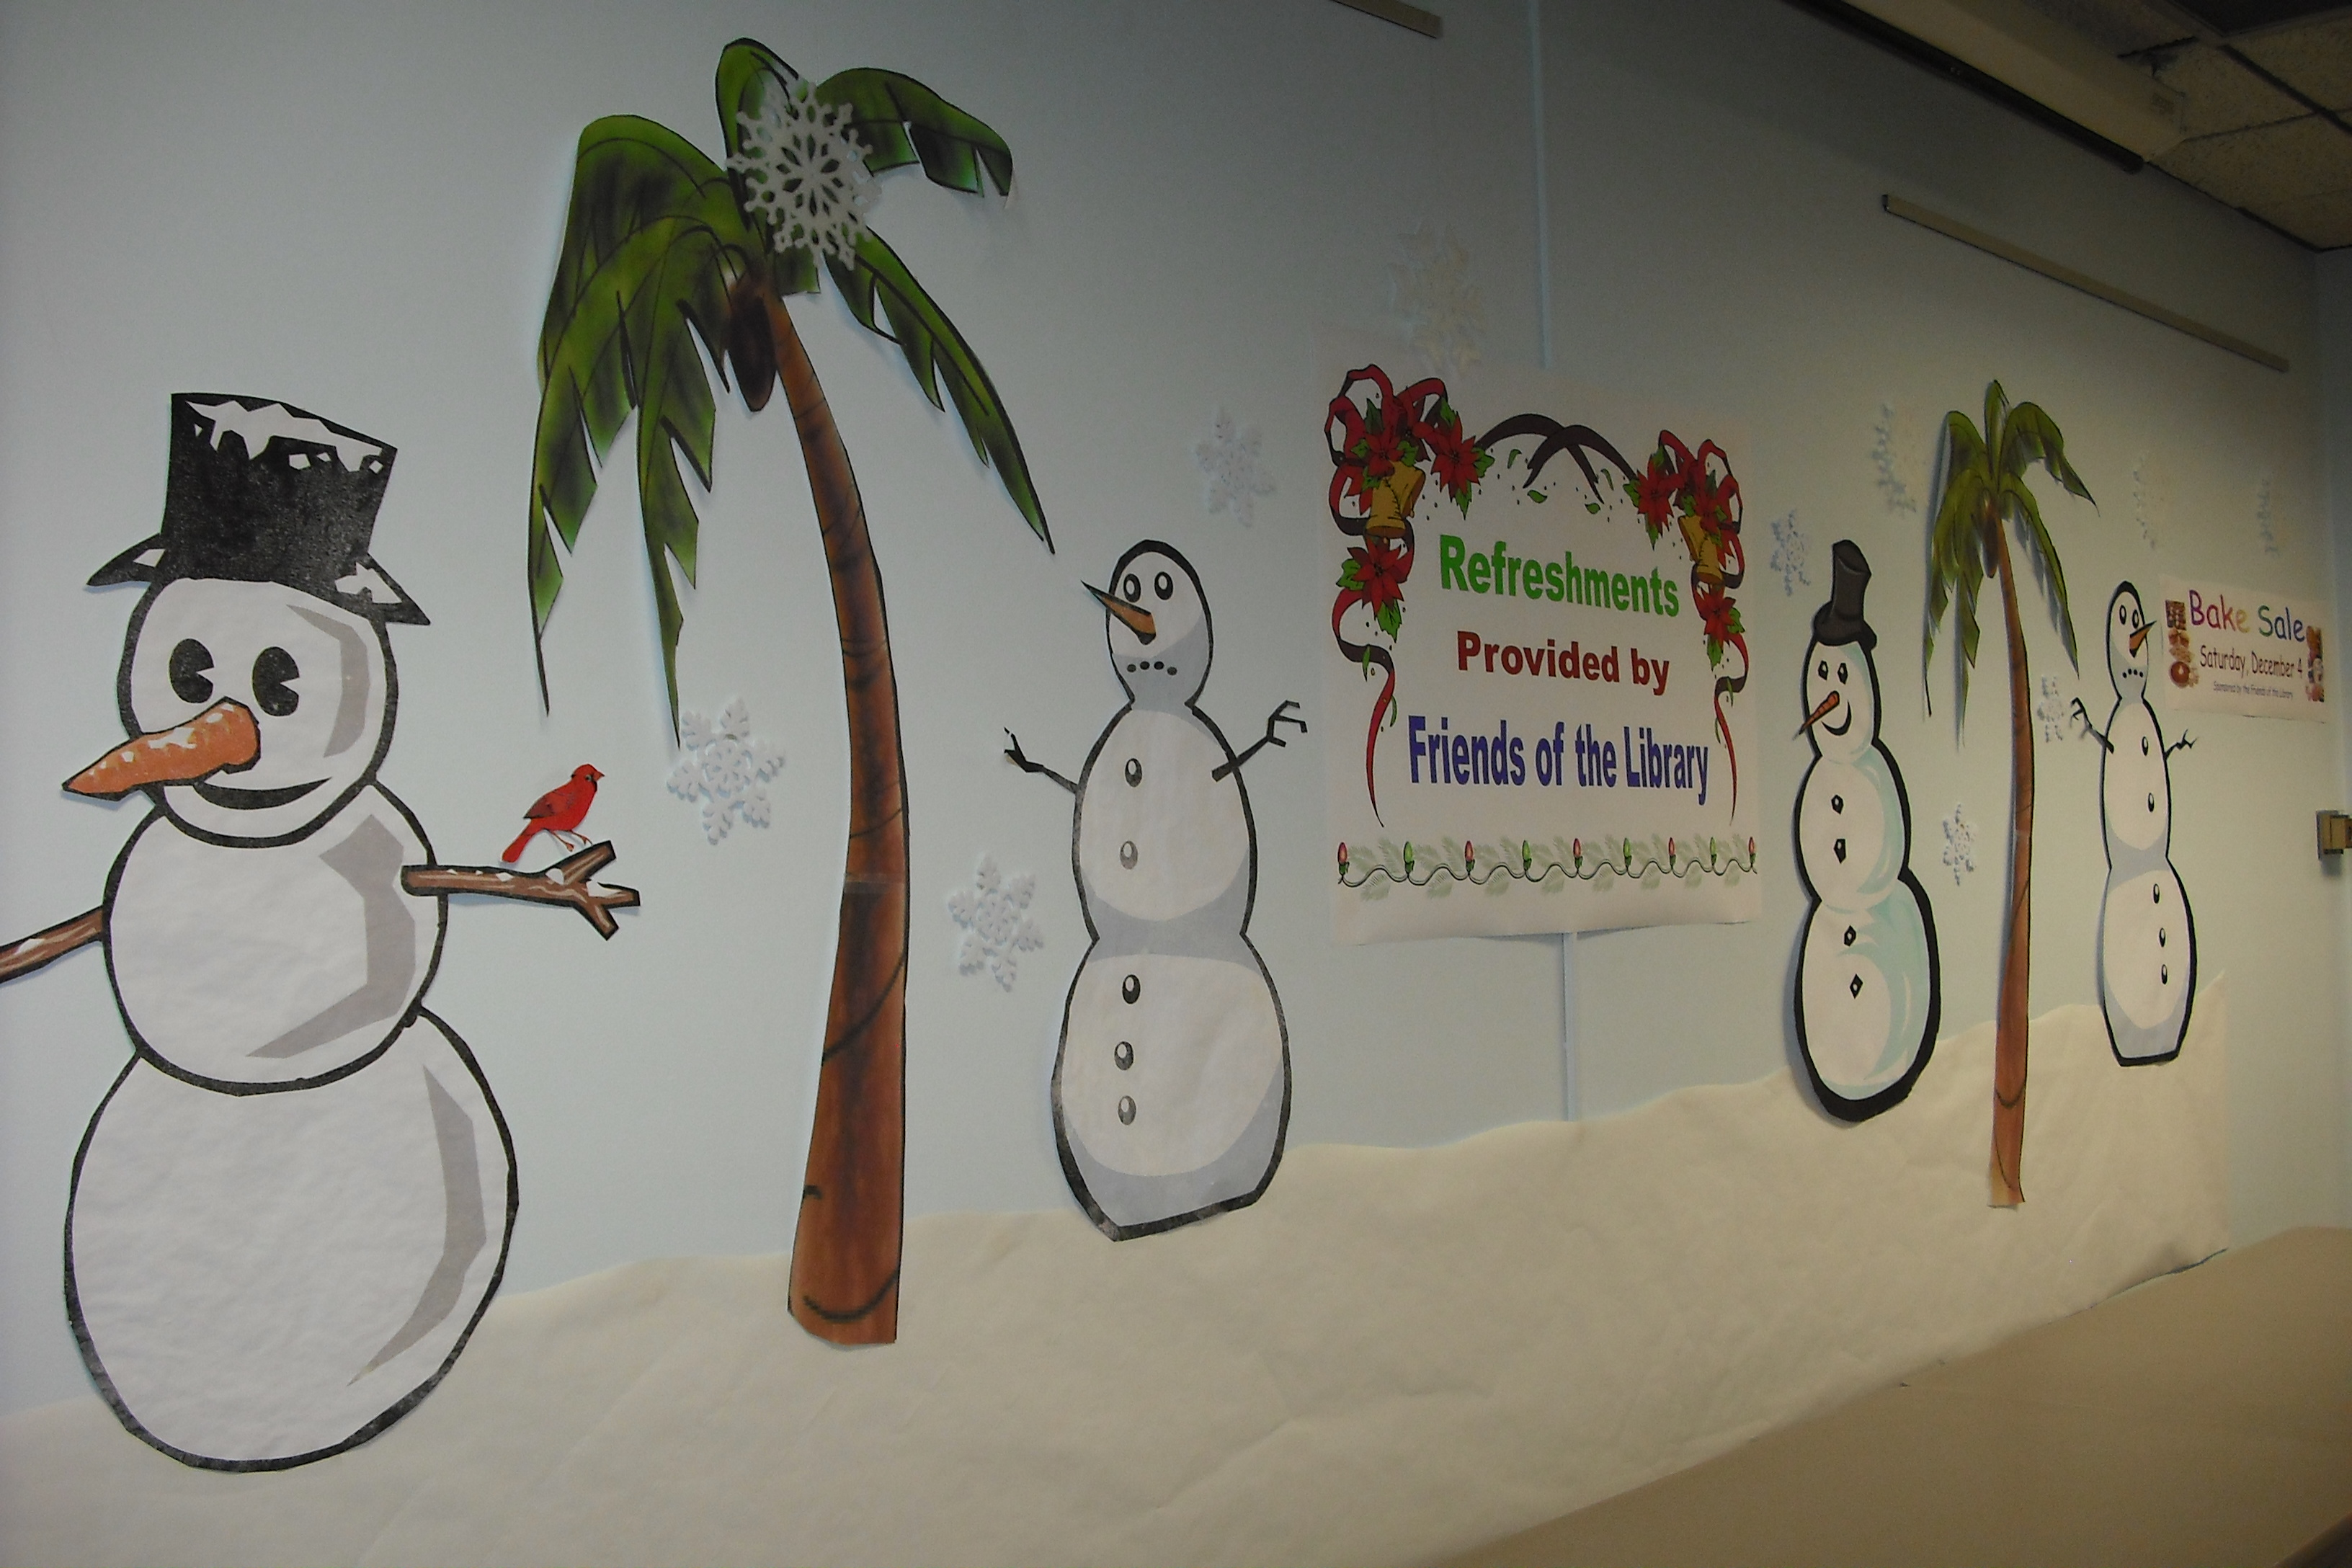 Snowmen and snow flakes decorate the interior of the library